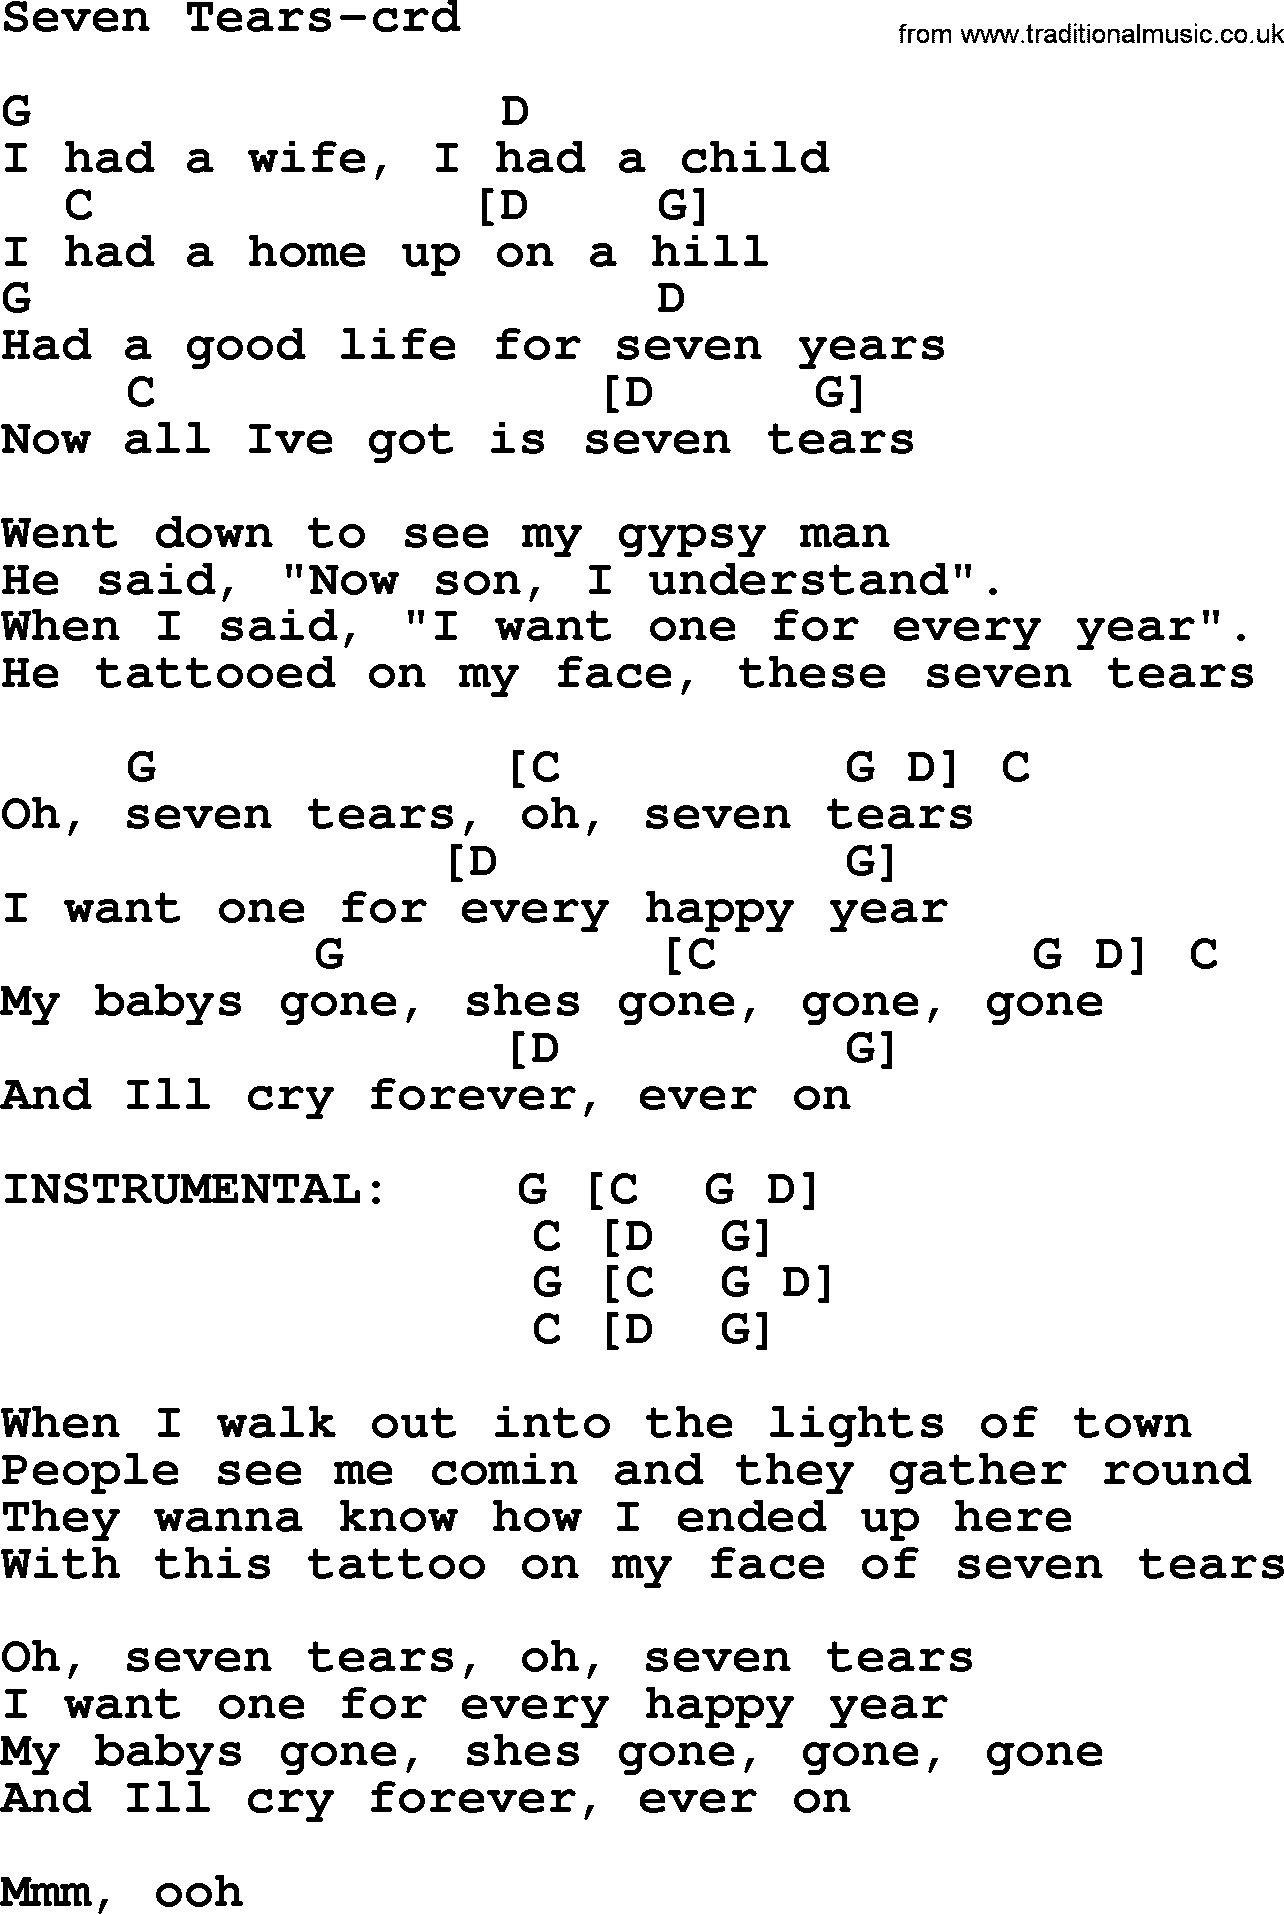 Seven Years Chords Bruce Springsteen Song Seven Tears Lyrics And Chords